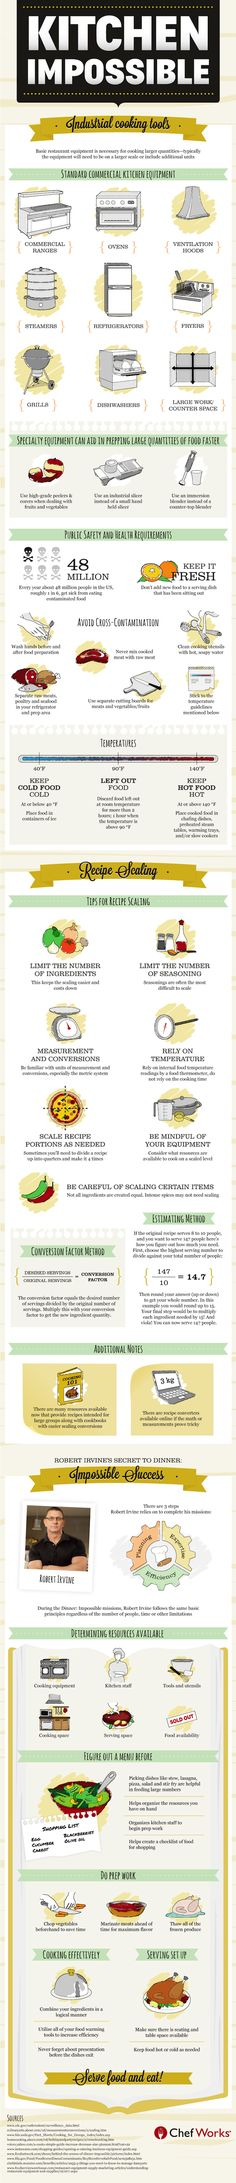 Mega Meals: Kitchen Impossible - Infographic #ChefSecrets